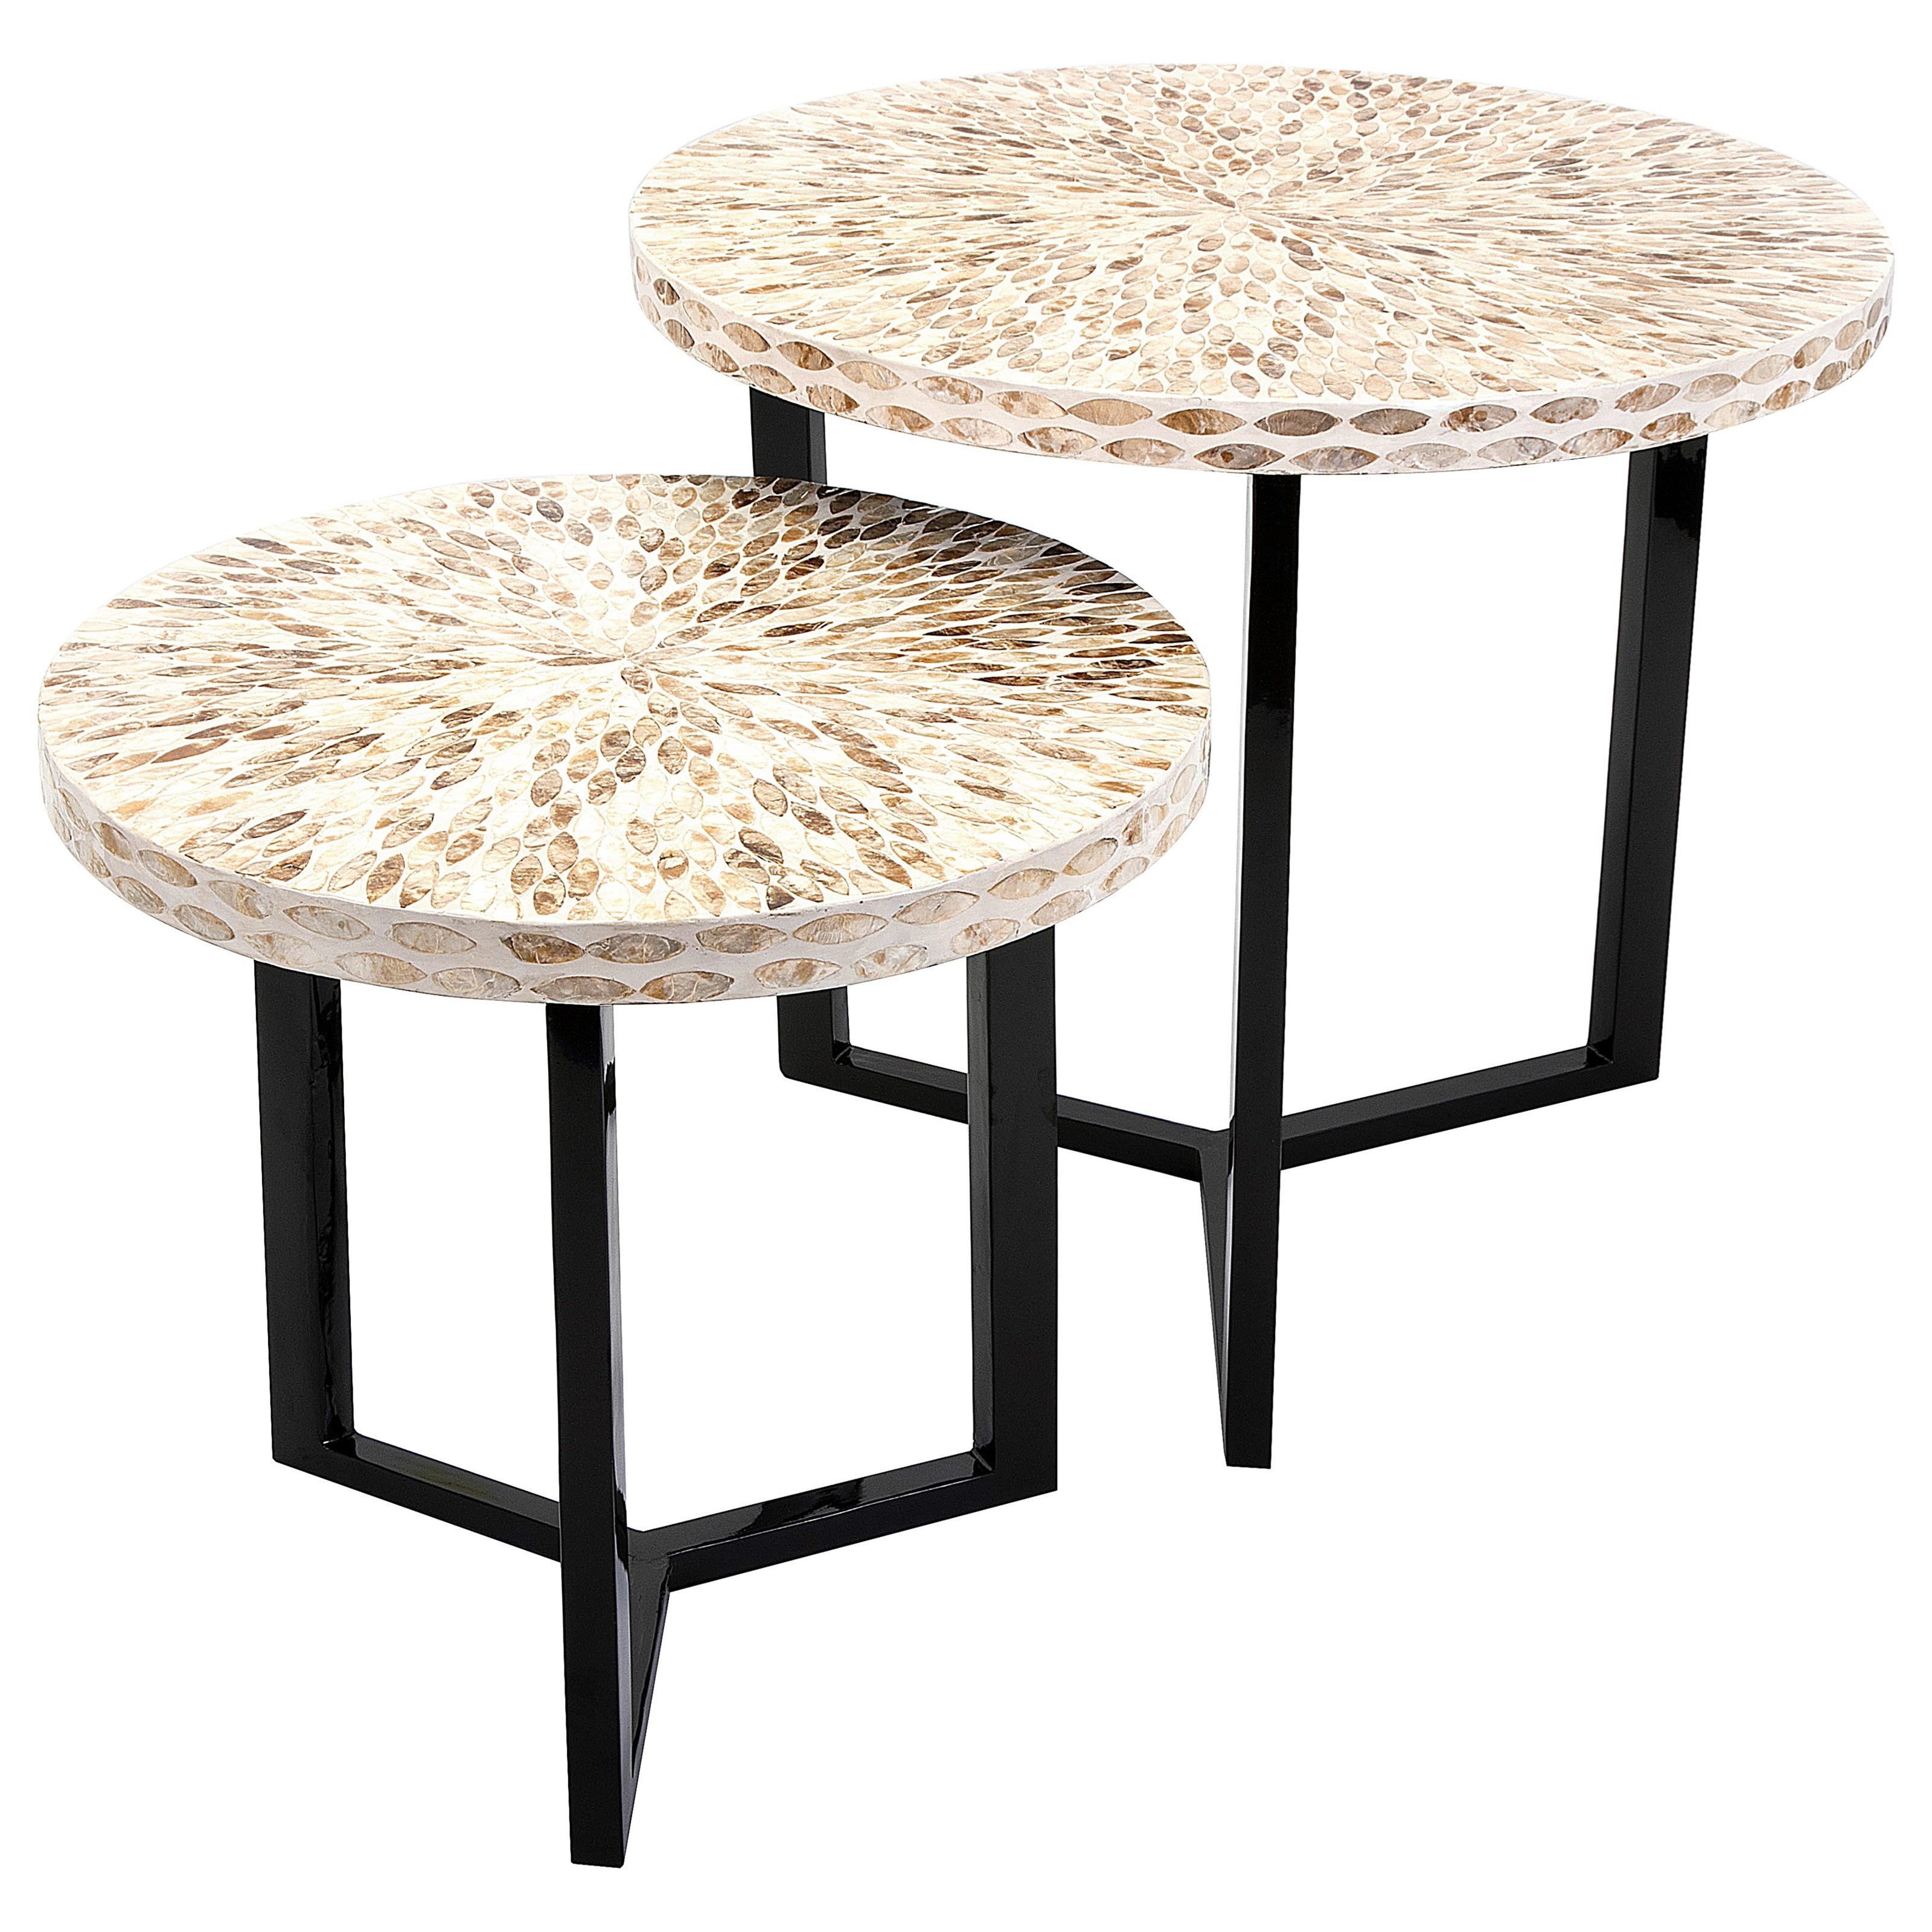 Accent Tables and Cabinets Pavati Shell Tables - Set of 2 by IMAX Worldwide Home at Alison Craig Home Furnishings